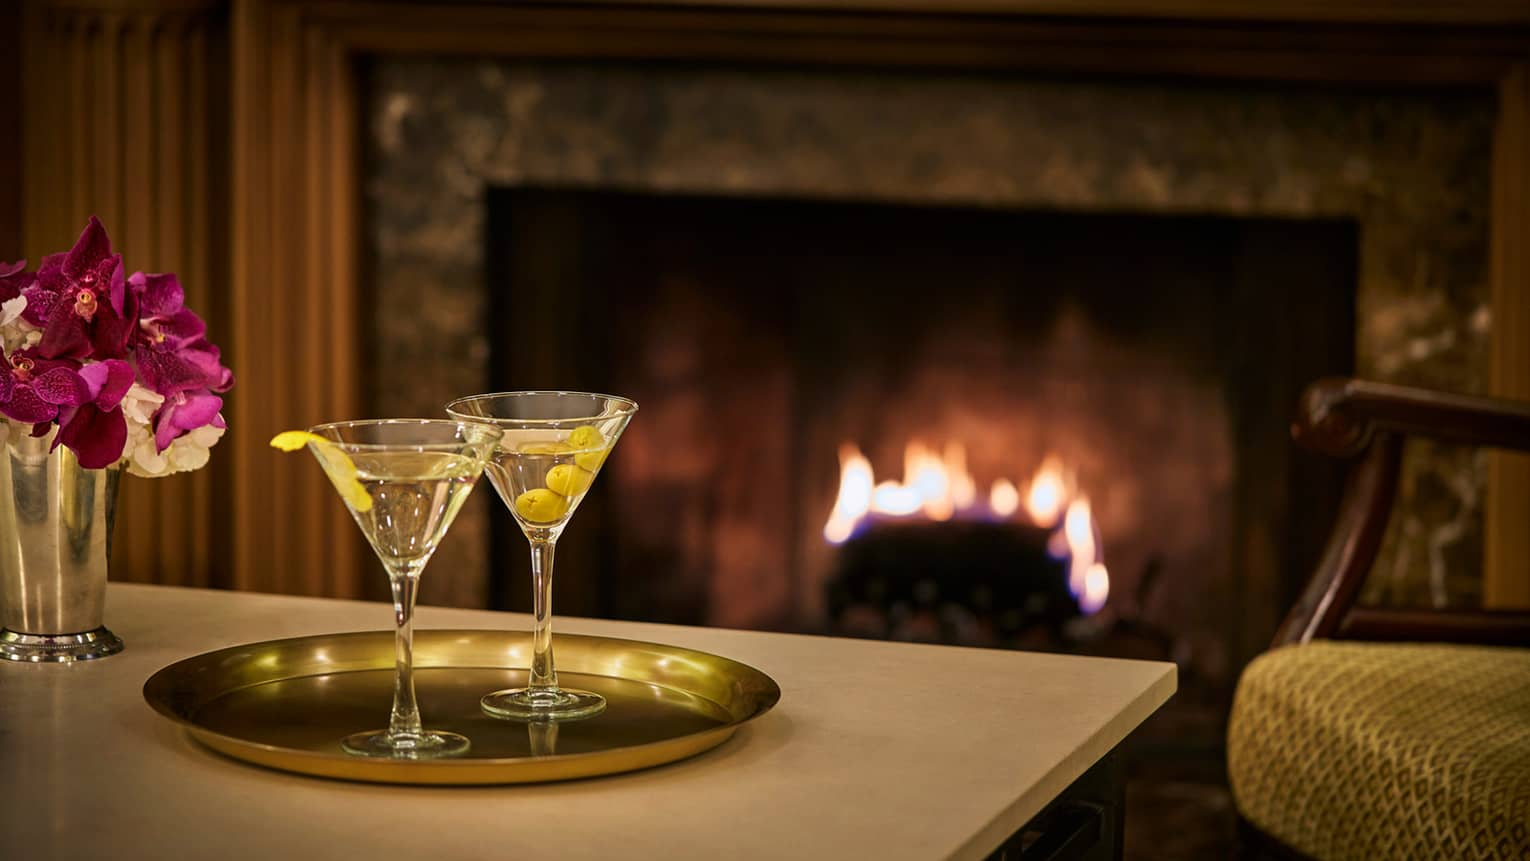 Tray with two martinis in front of roaring fireplace